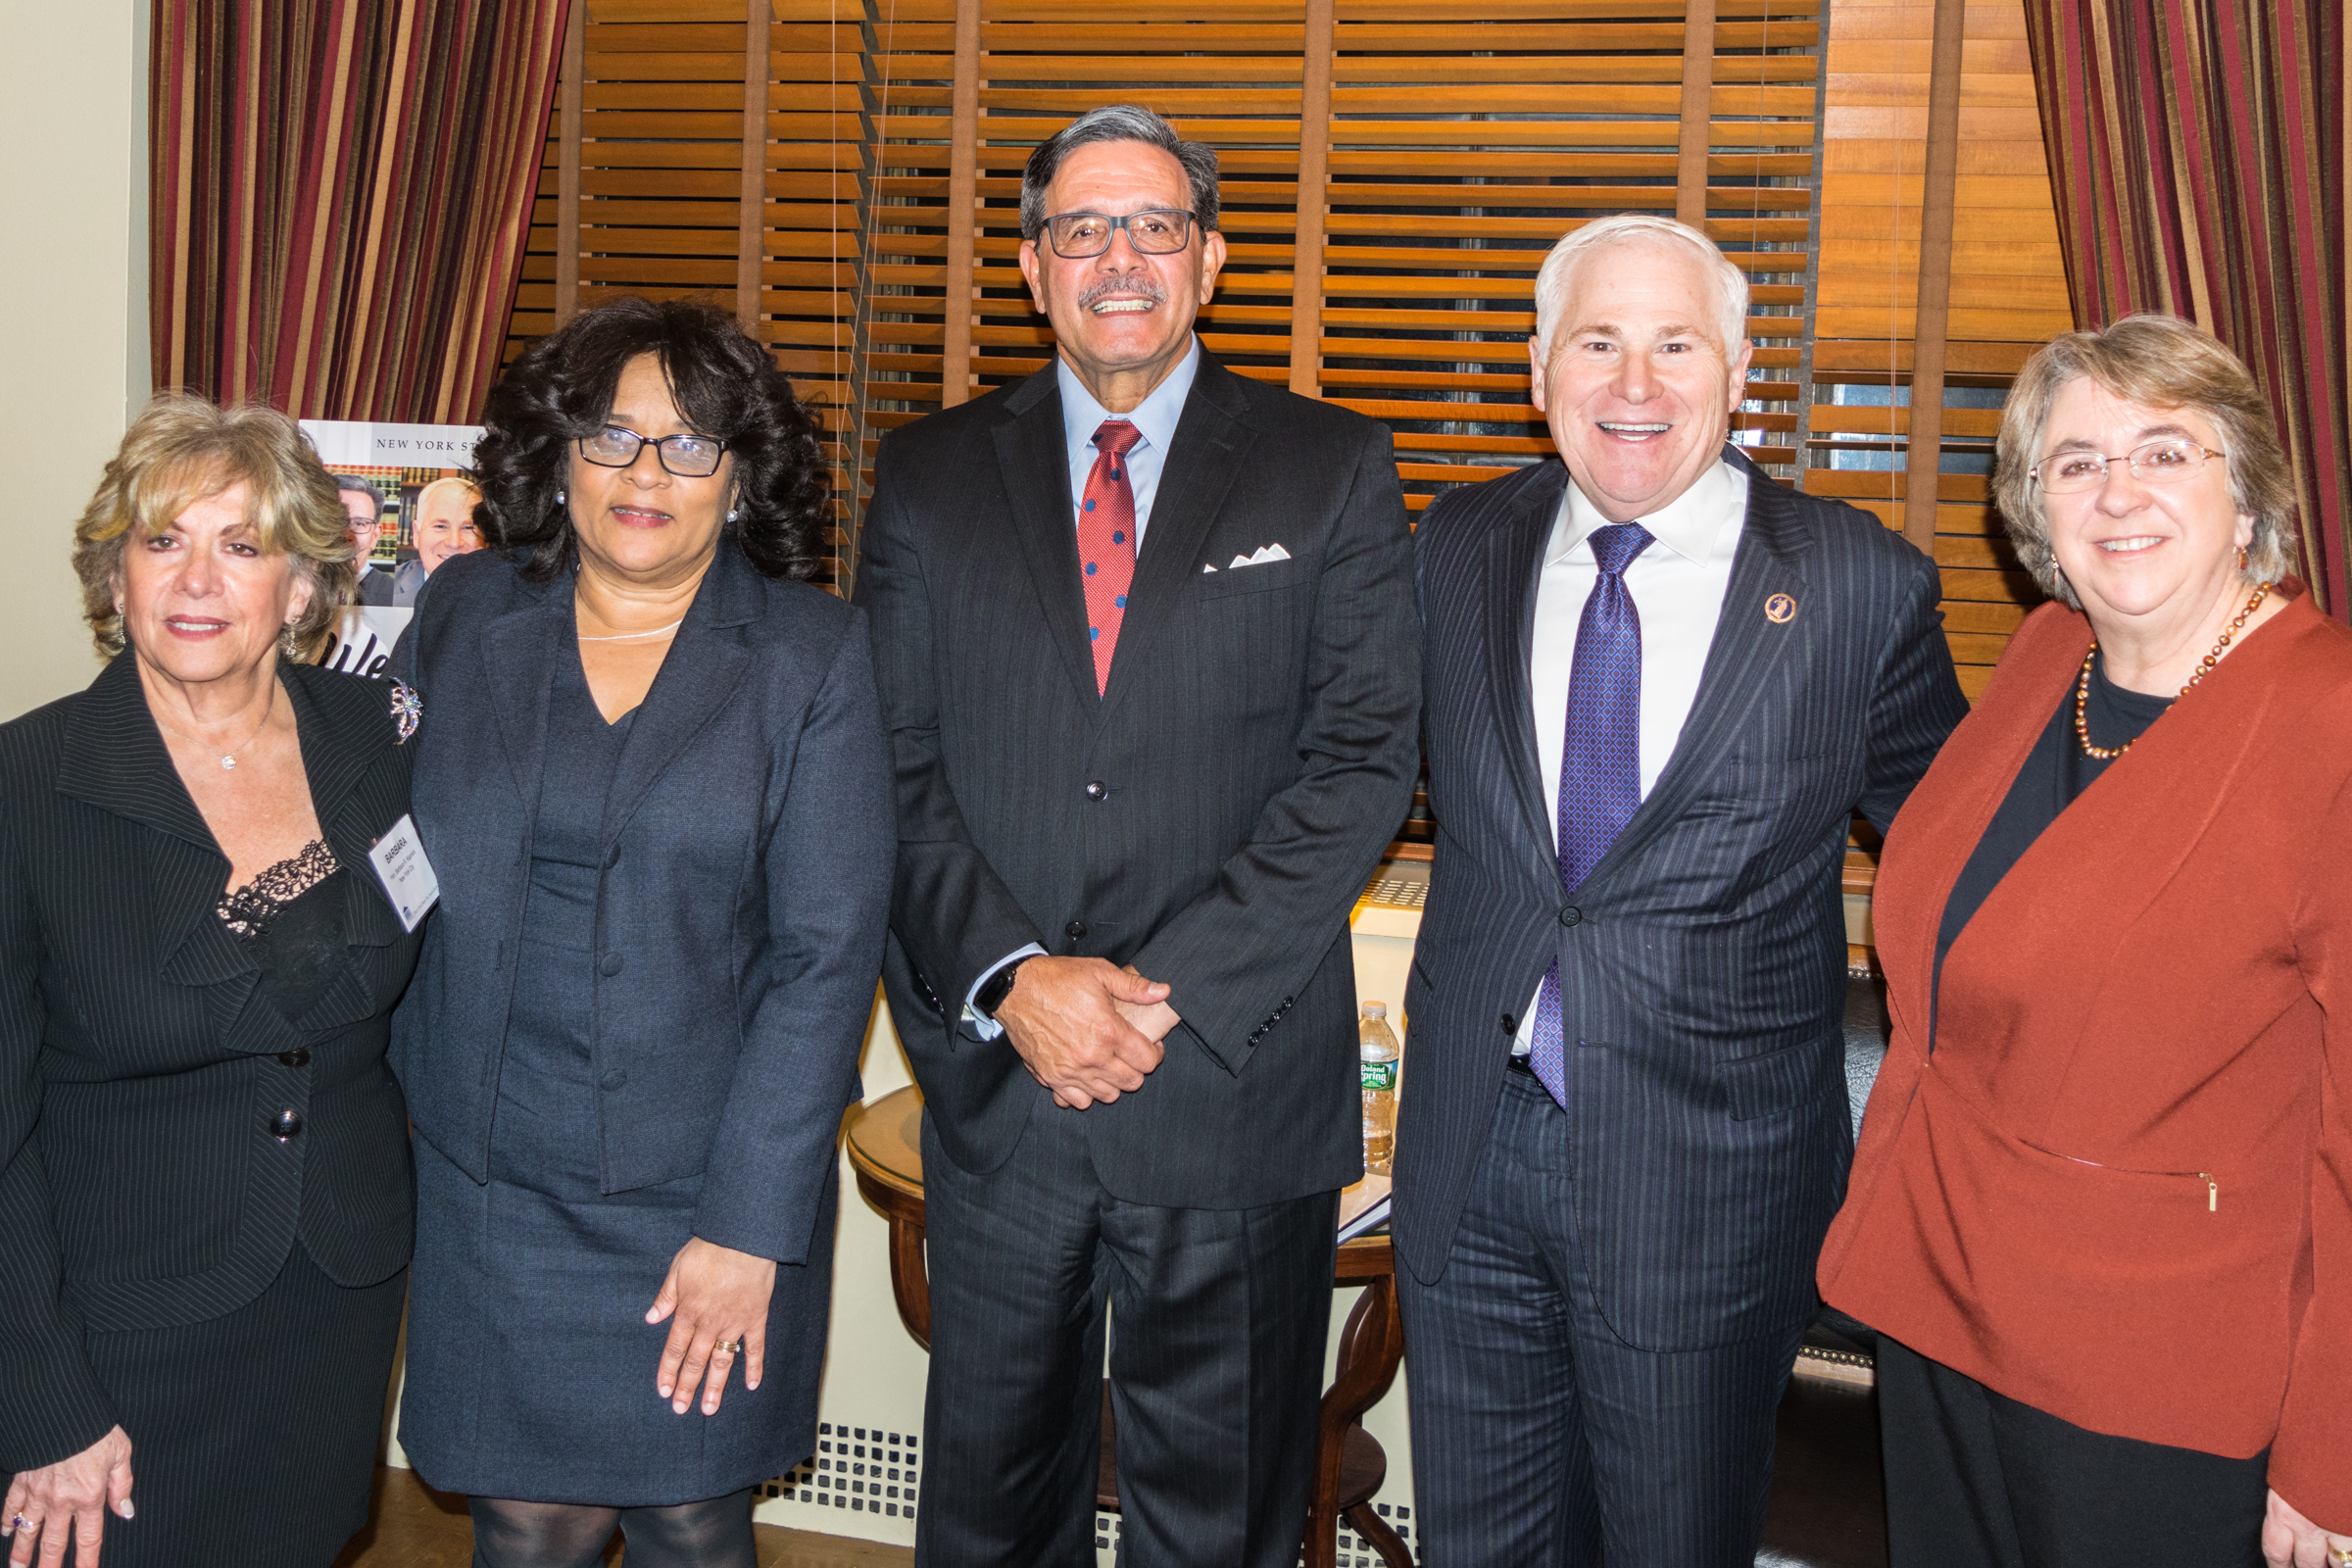 "Three of the presiding justices of the Appellate Division met with bar association leaders from around the state during a ""Meet the Presiding Justices"" meeting hosted by the NYS Bar Association and the Brooklyn Bar Association. Pictured from left: Hon. Barbara R. Kapnick, Hon. Cheryl Chambers, Hon. Rolando T. Acosta, Presiding Justice, First Department, Hon. Alan D. Scheinkman, Presiding Justice, Second Department, and Hon. Elizabeth A. Garry, Presiding Justice, Third Department."